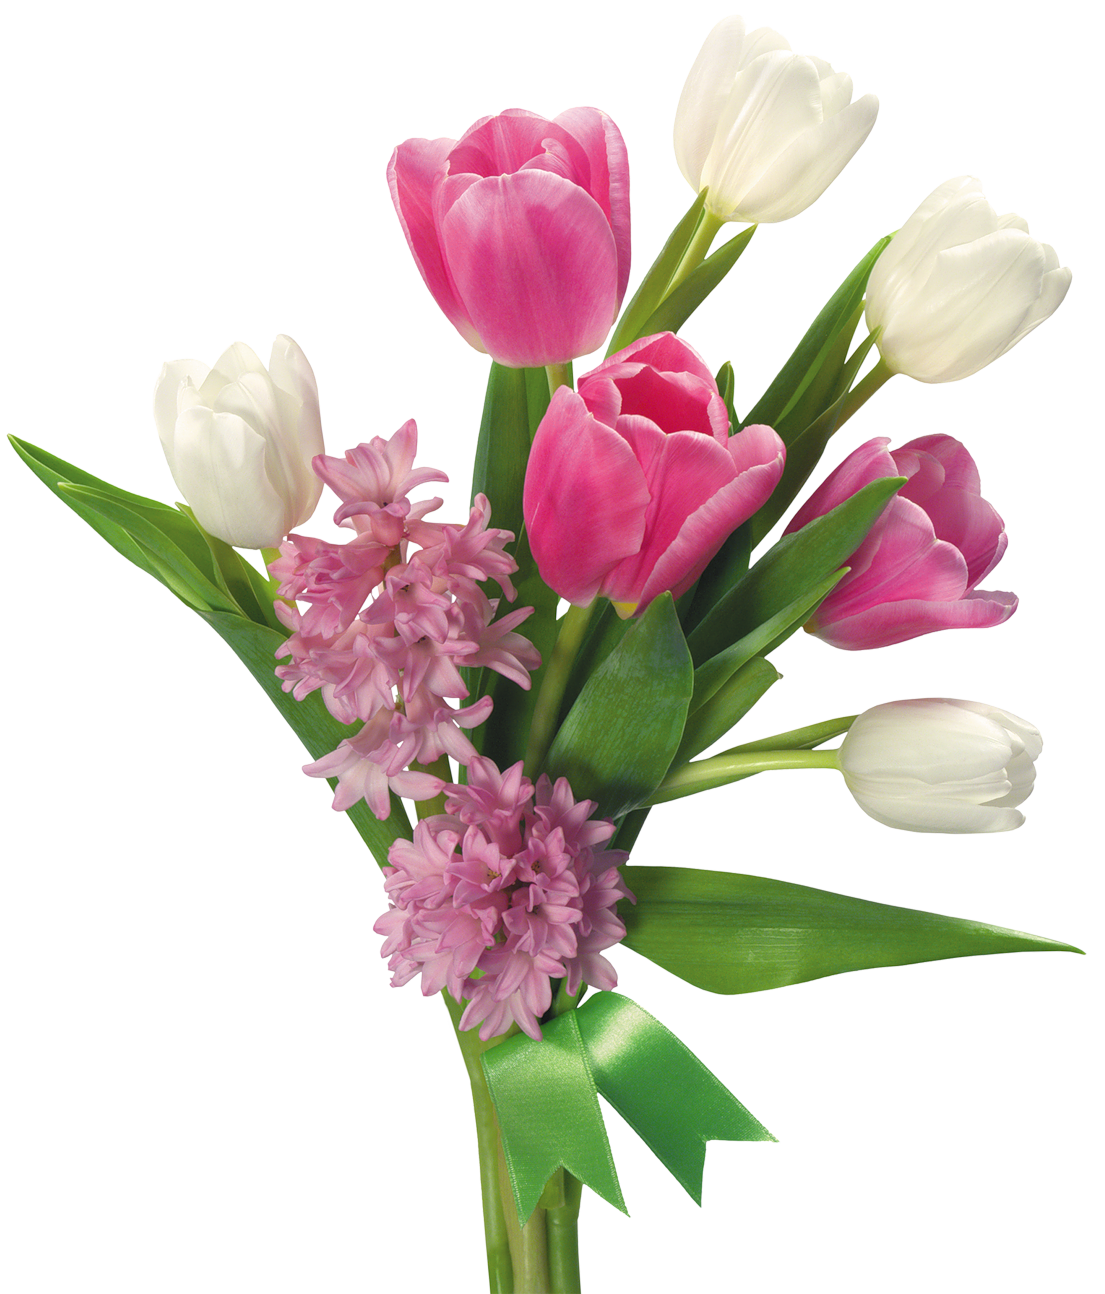 Spring Flowers Png - ClipArt Best